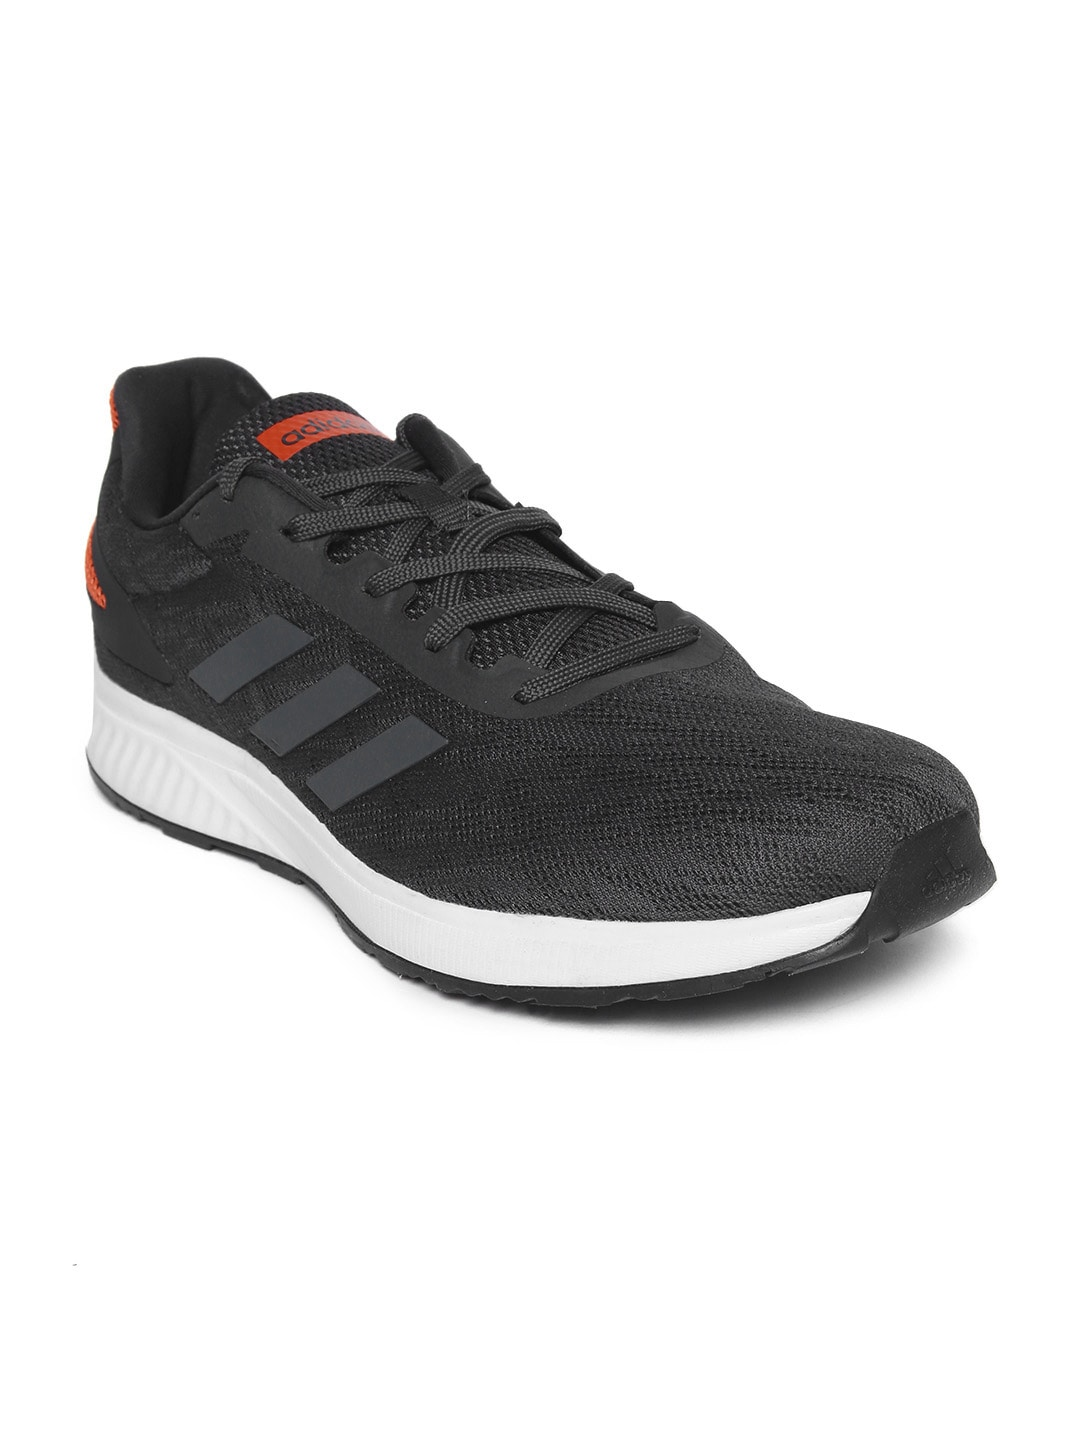 7f018db05cb6 Adidas Shoes - Buy Adidas Shoes for Men   Women Online - Myntra